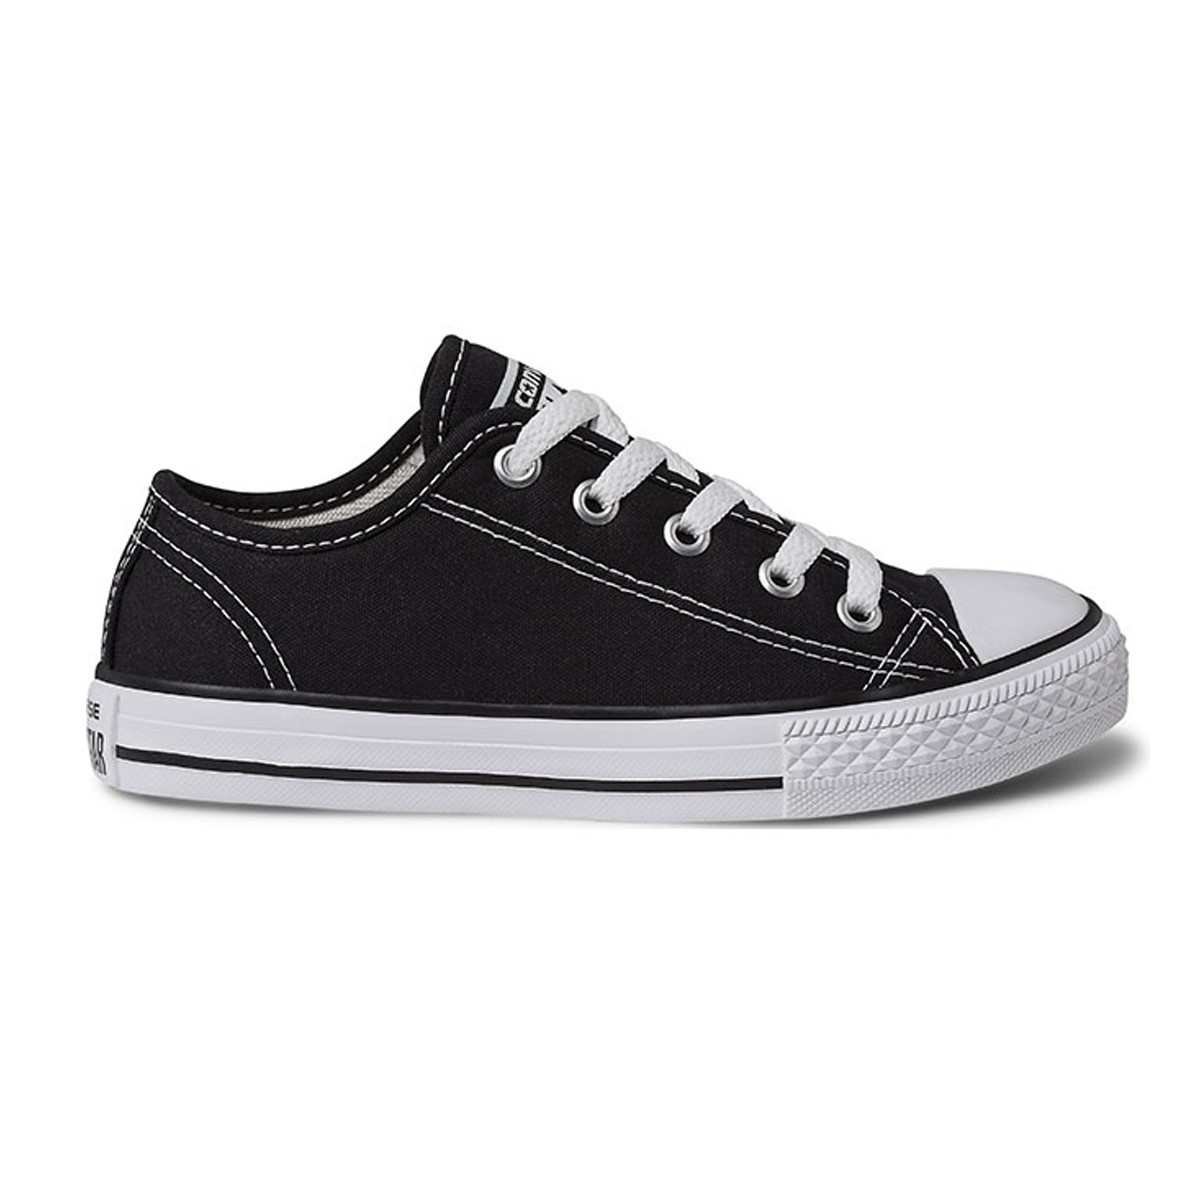 TÊNIS CHUCK TAYLOR ALL STAR BORDER PRETO CONVERSE